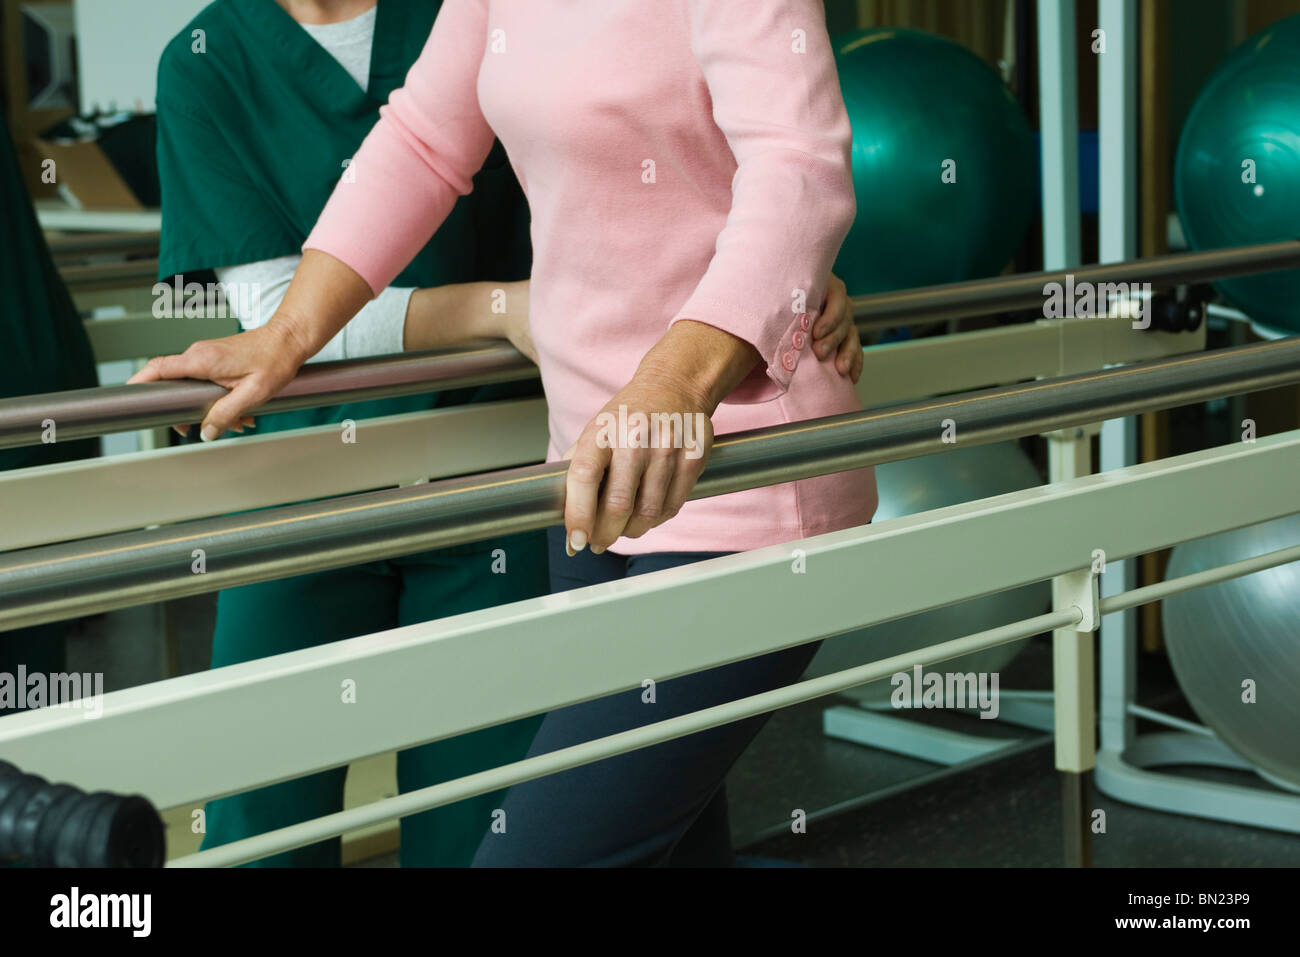 Patient undergoing post-surgery rehabilitation exercises to regain ability to walk - Stock Image